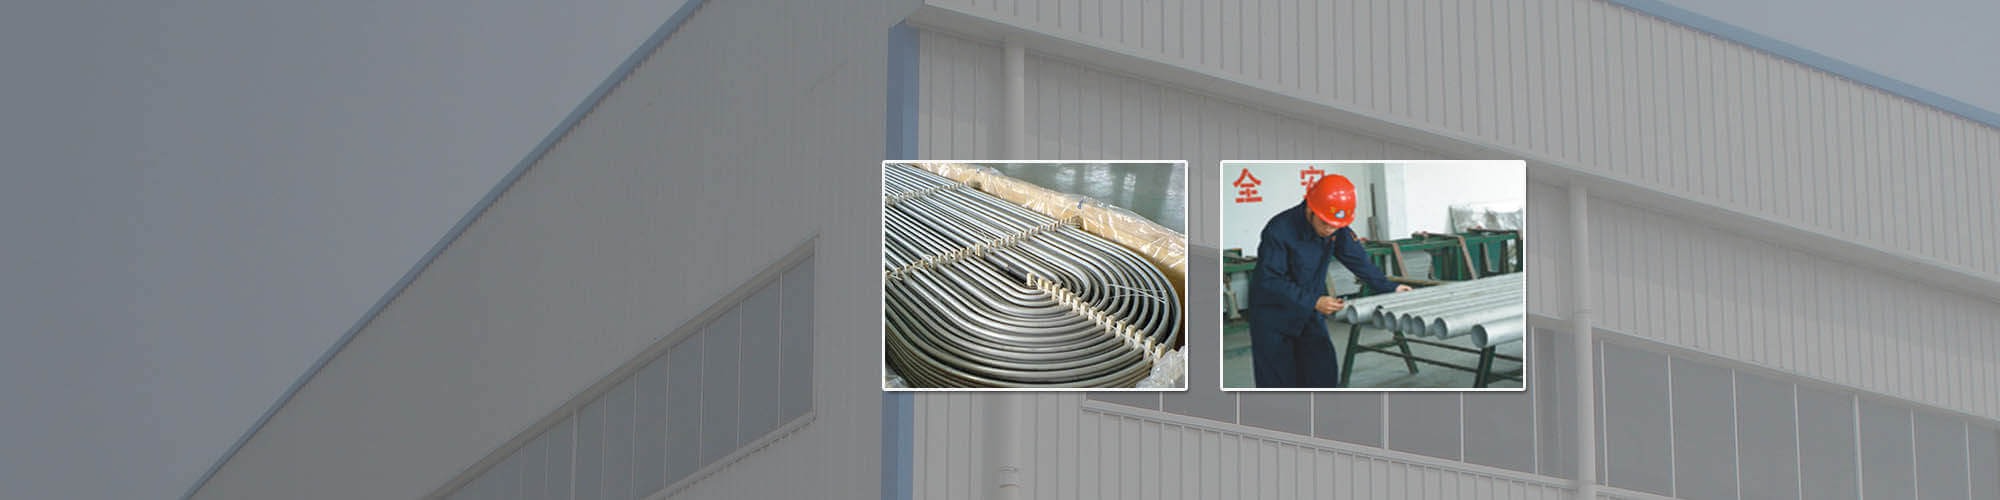 Dongshang Stainless